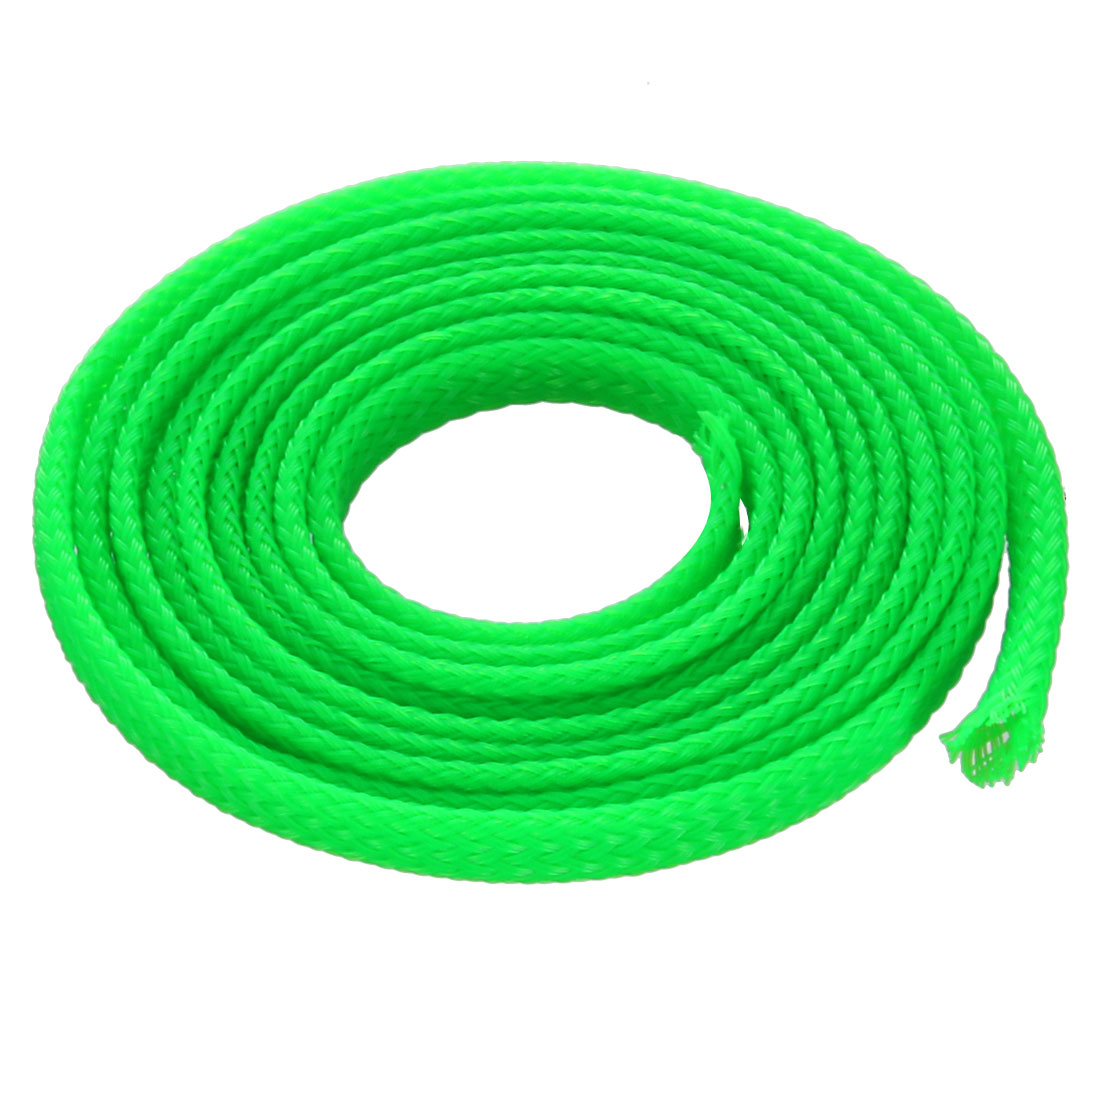 4mm Dia Tight Braided PET Expandable Sleeving Cable Wrap Sheath Fluorescent Green 3Ft